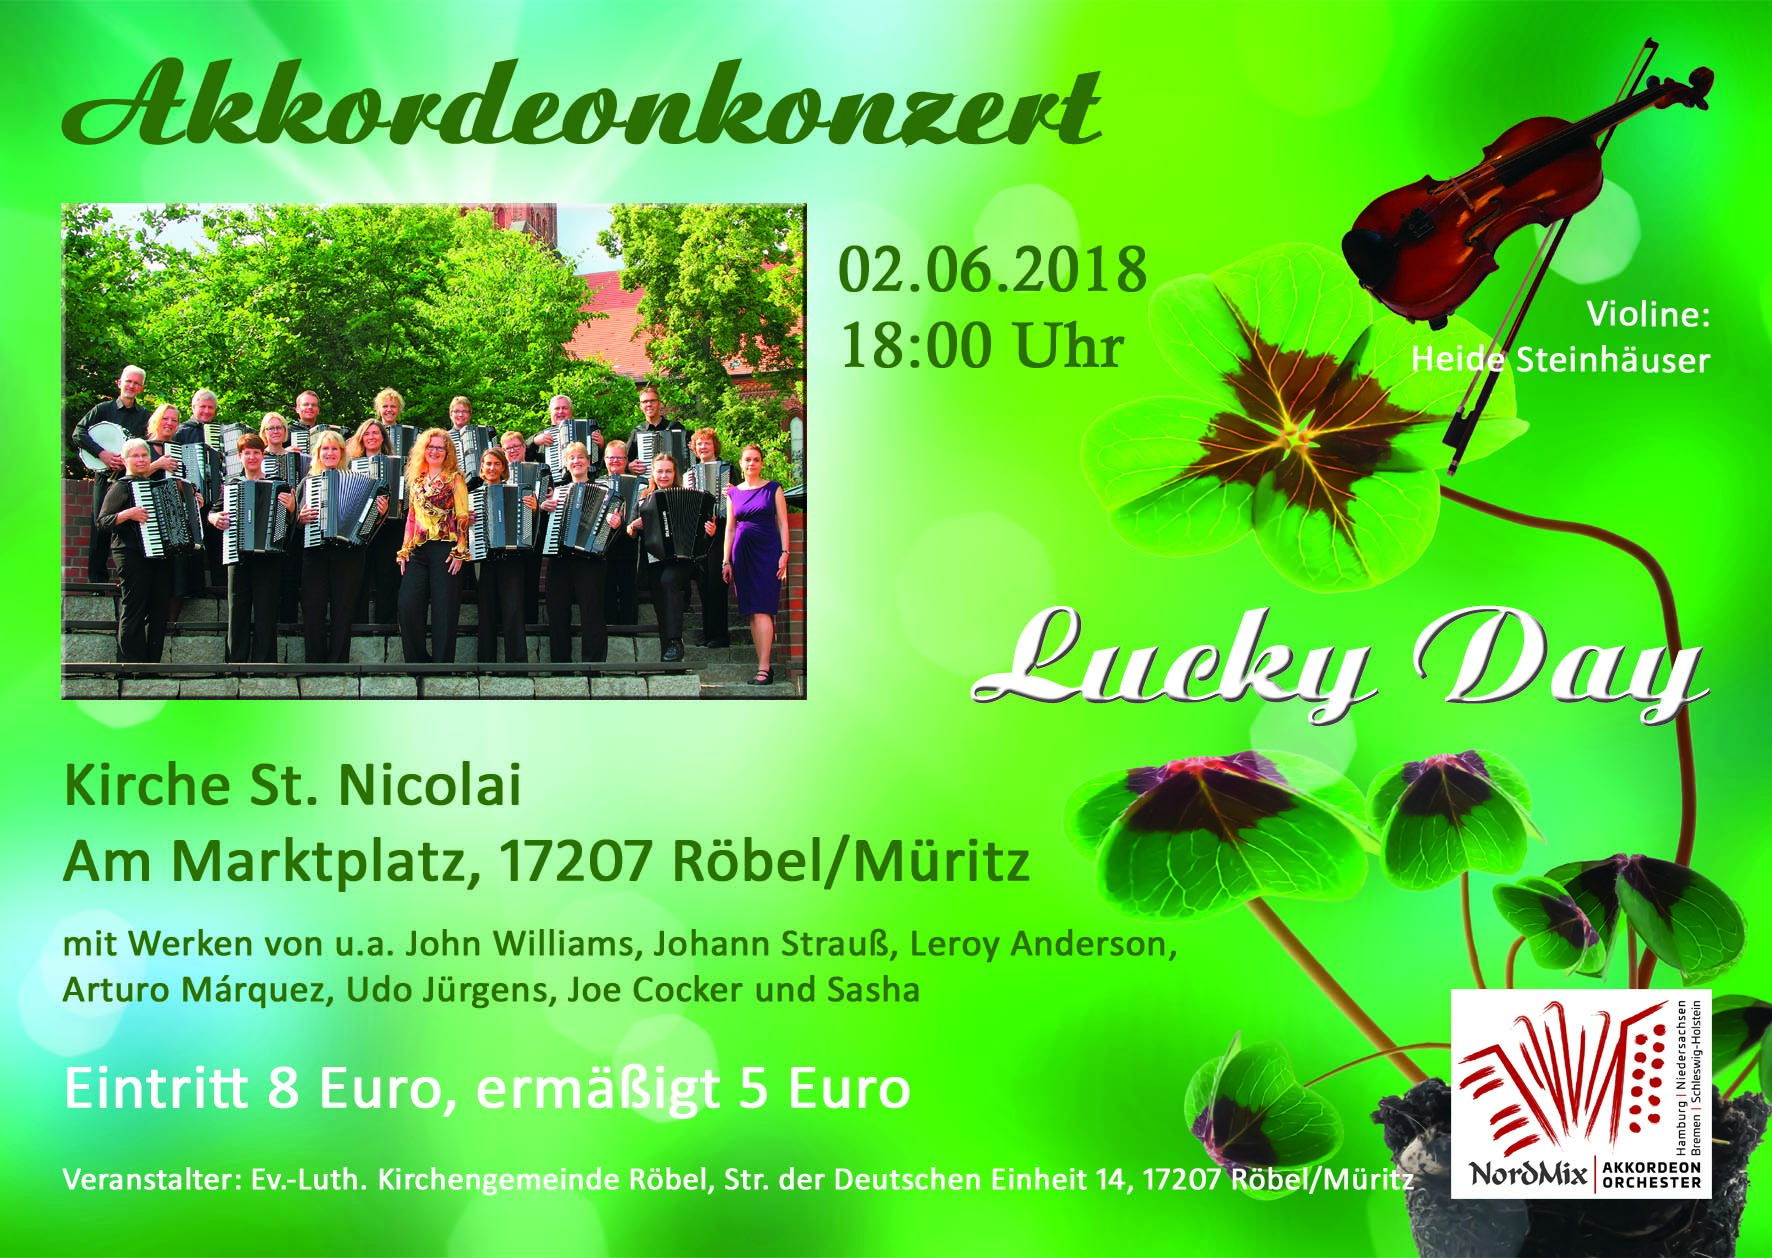 Konzert am 02.06.2018 in Röbel